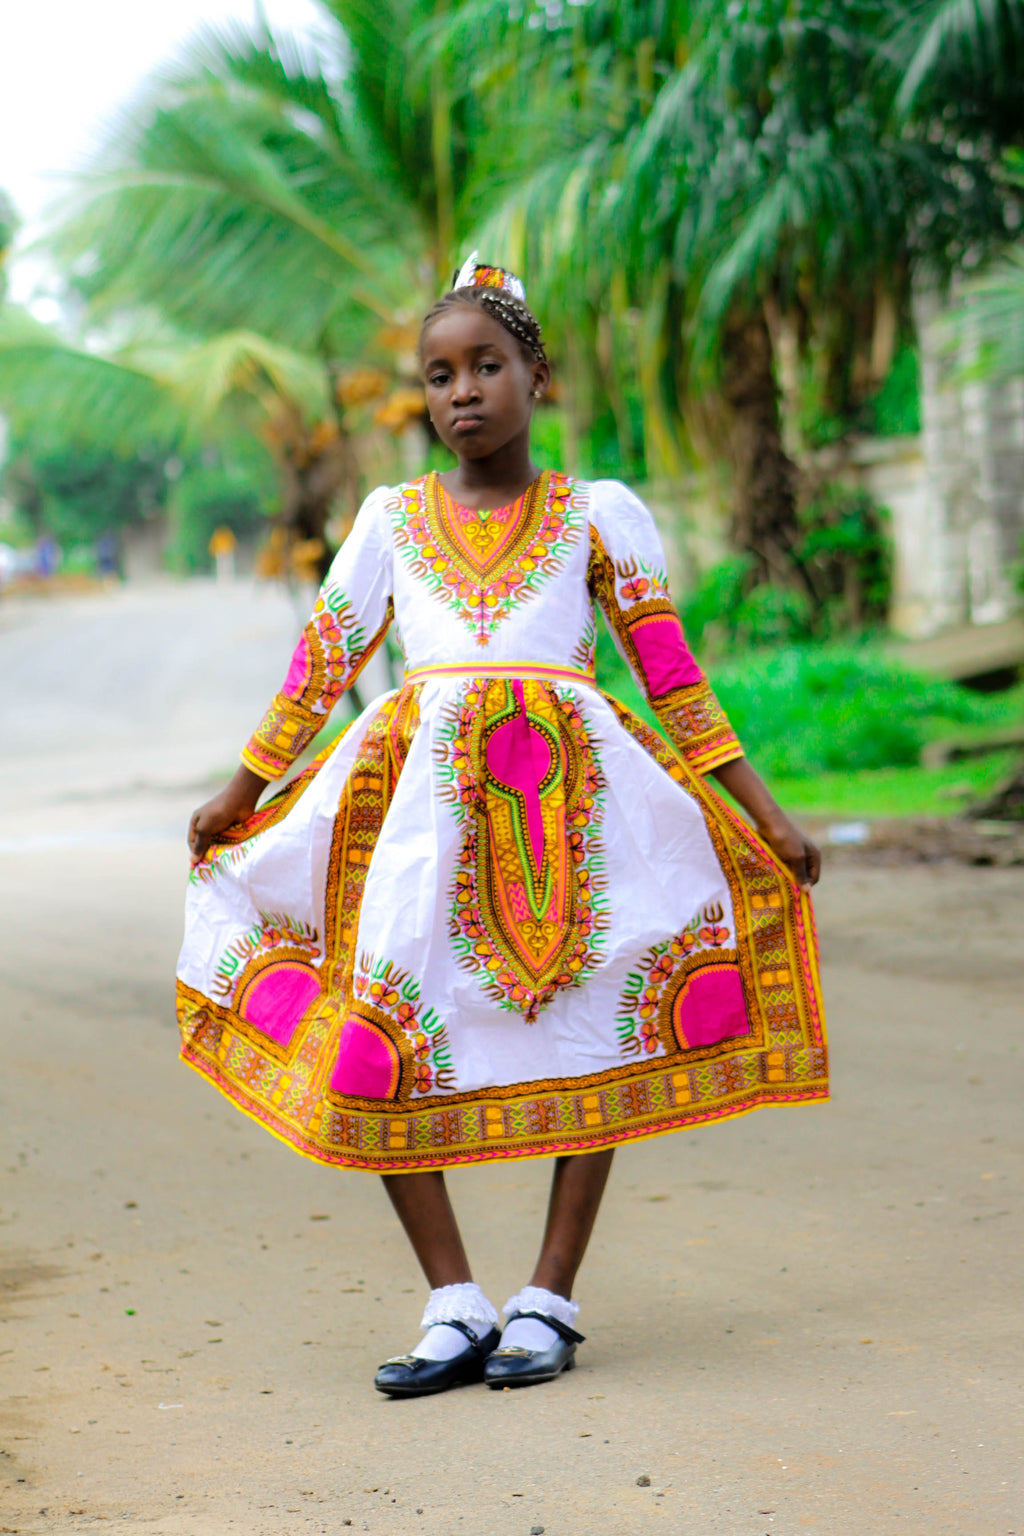 children african dresses| children african outfits| children african clothes| children outfits| children fashion dresses|